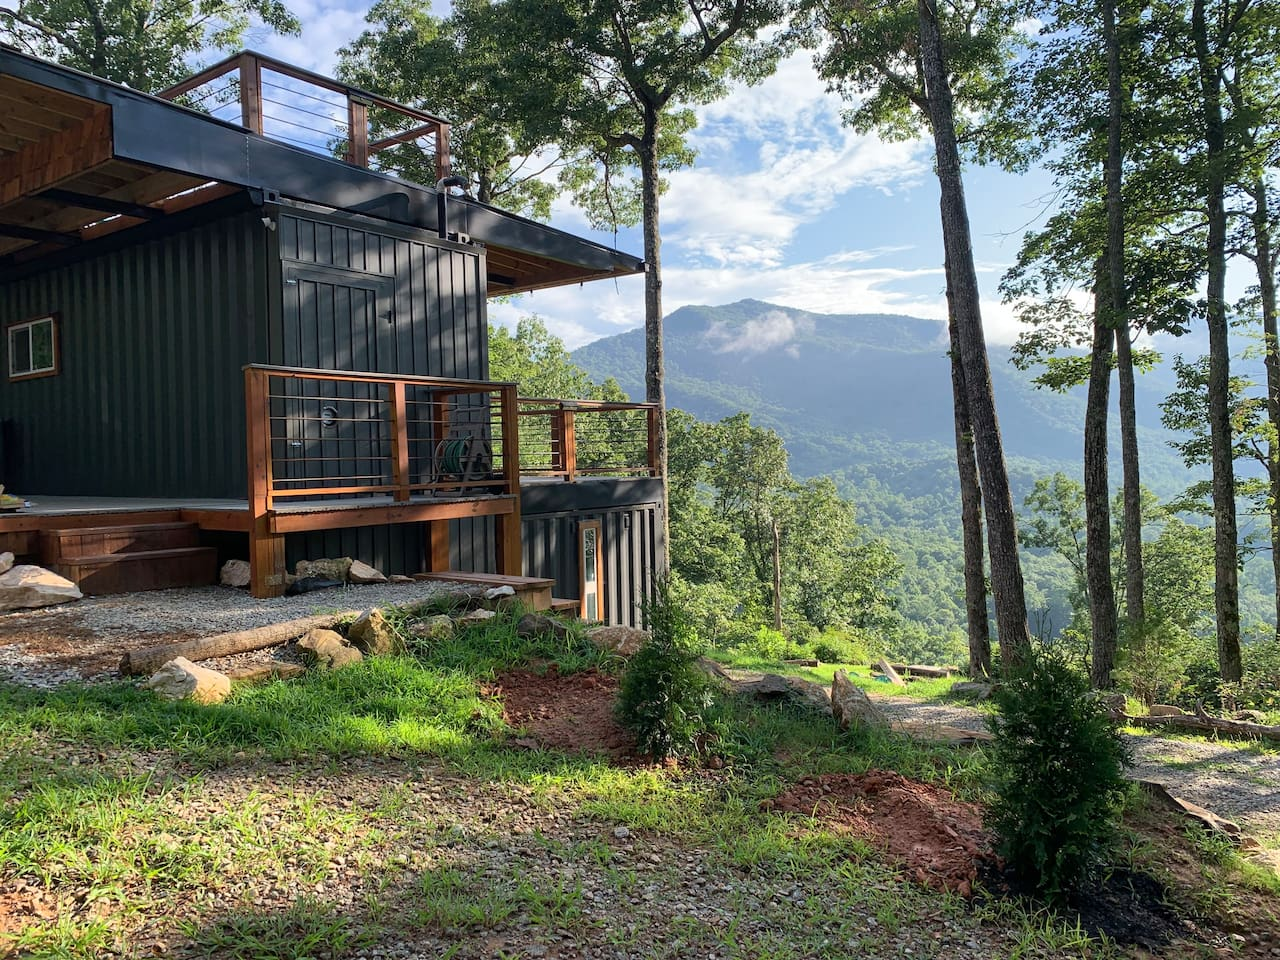 After you pass our gate and navigate the long winding driveway you will approach a modern tiny home built out of shipping containers, tucked high in the Smokey Mountains.